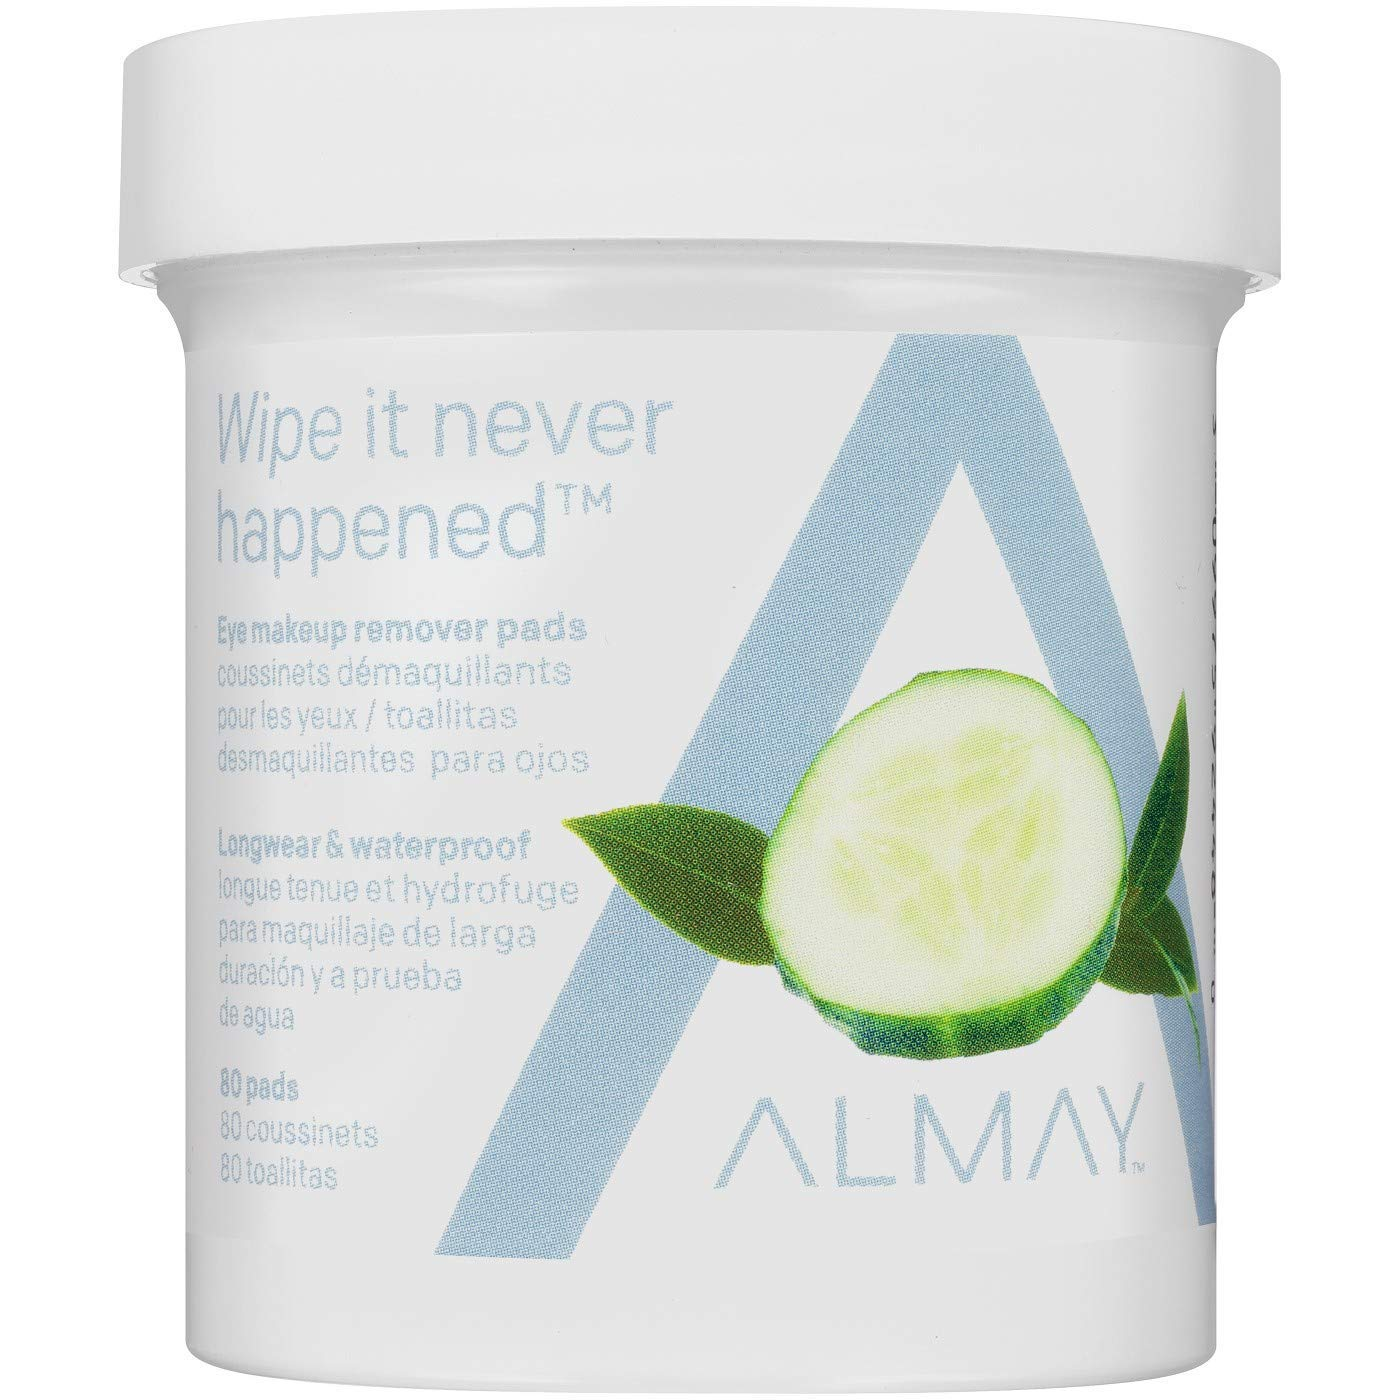 Almay Eye Makeup Remover Pads, Longwear Waterproof 80 ea Pack of 5